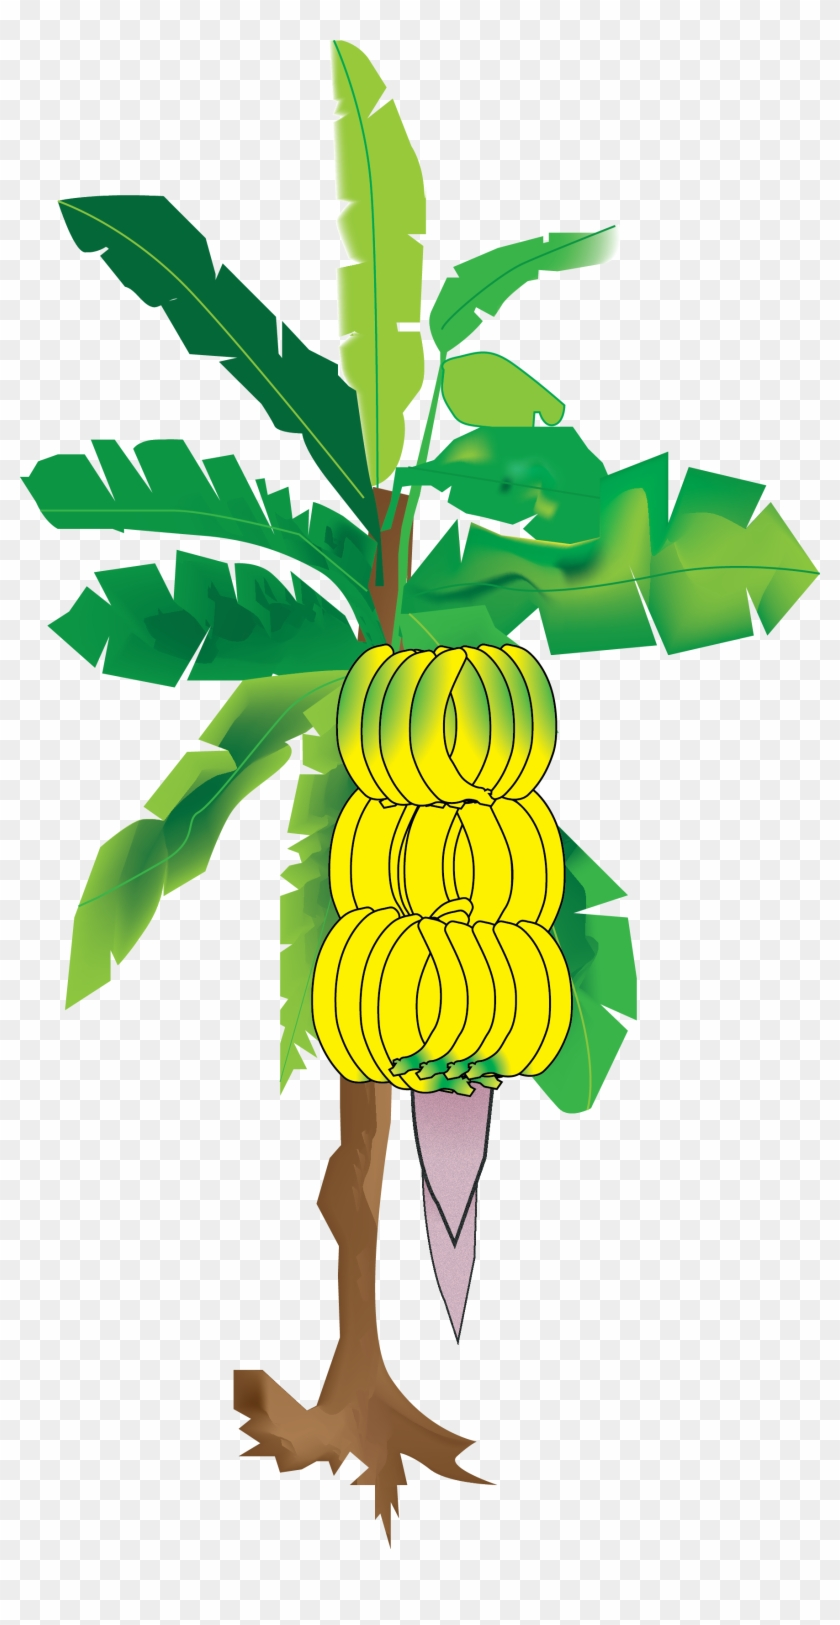 My Illustration Of The Banana Tree From Sun S Eye An Banana Tree Png Images Hd Transparent Png 1751x3305 6121680 Pngfind